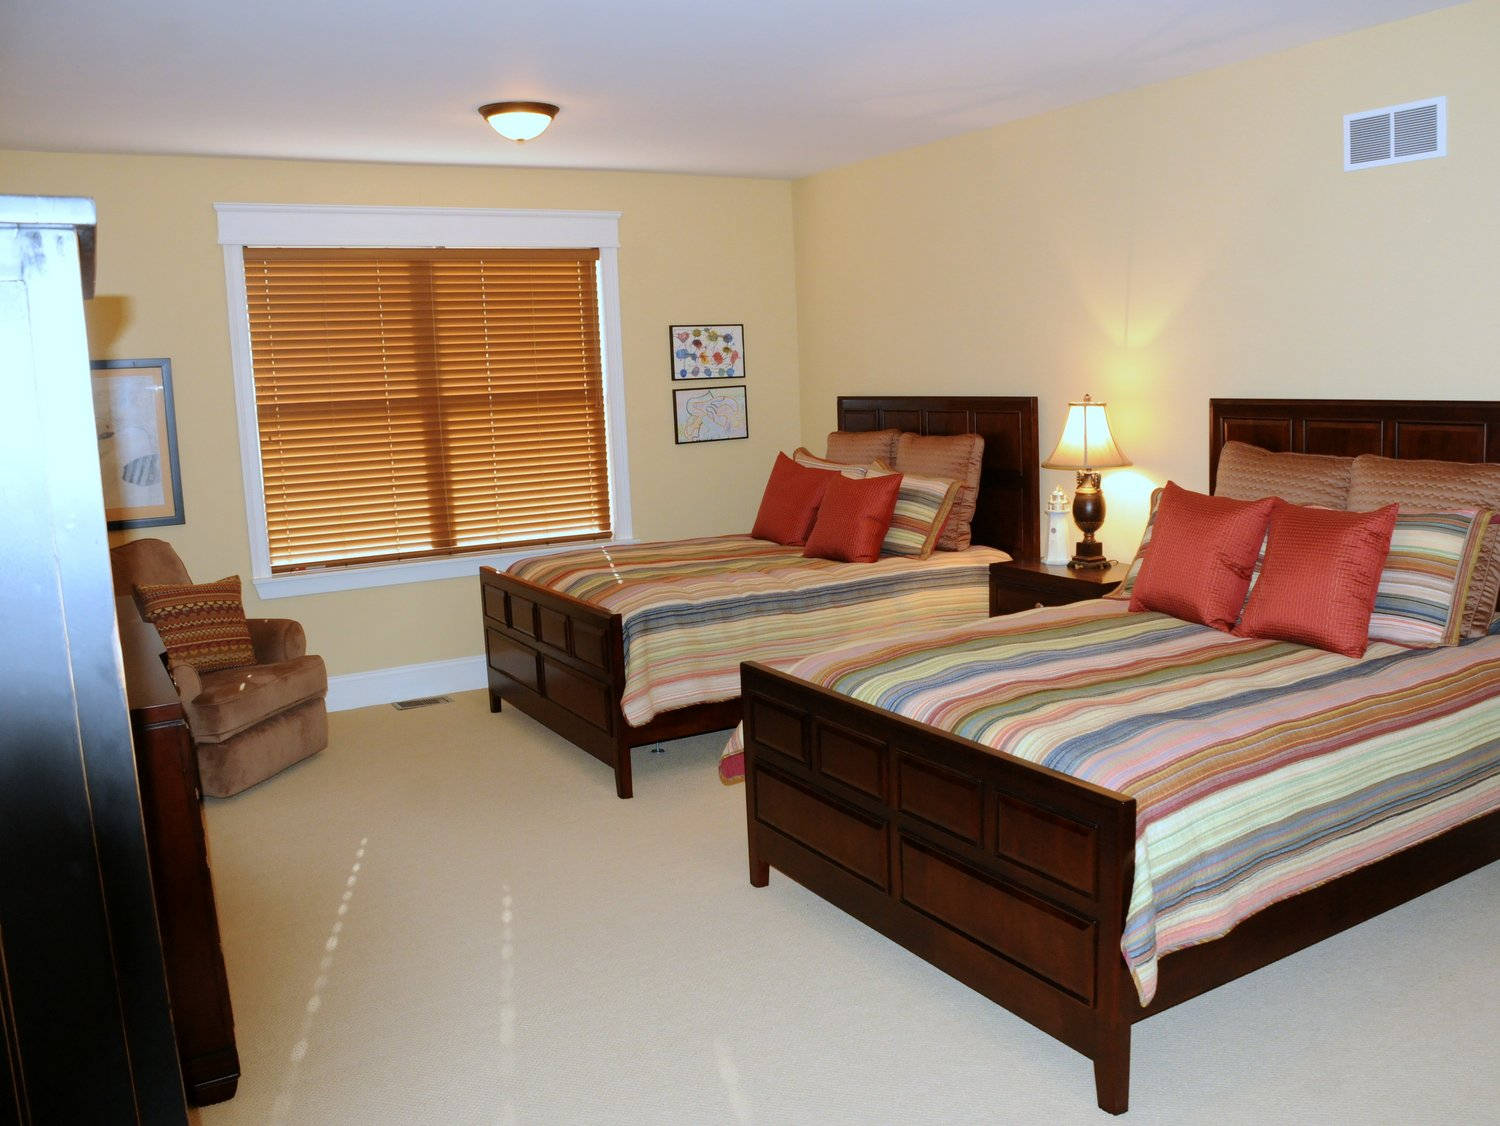 Third Bedroom with shared beds for guests or children